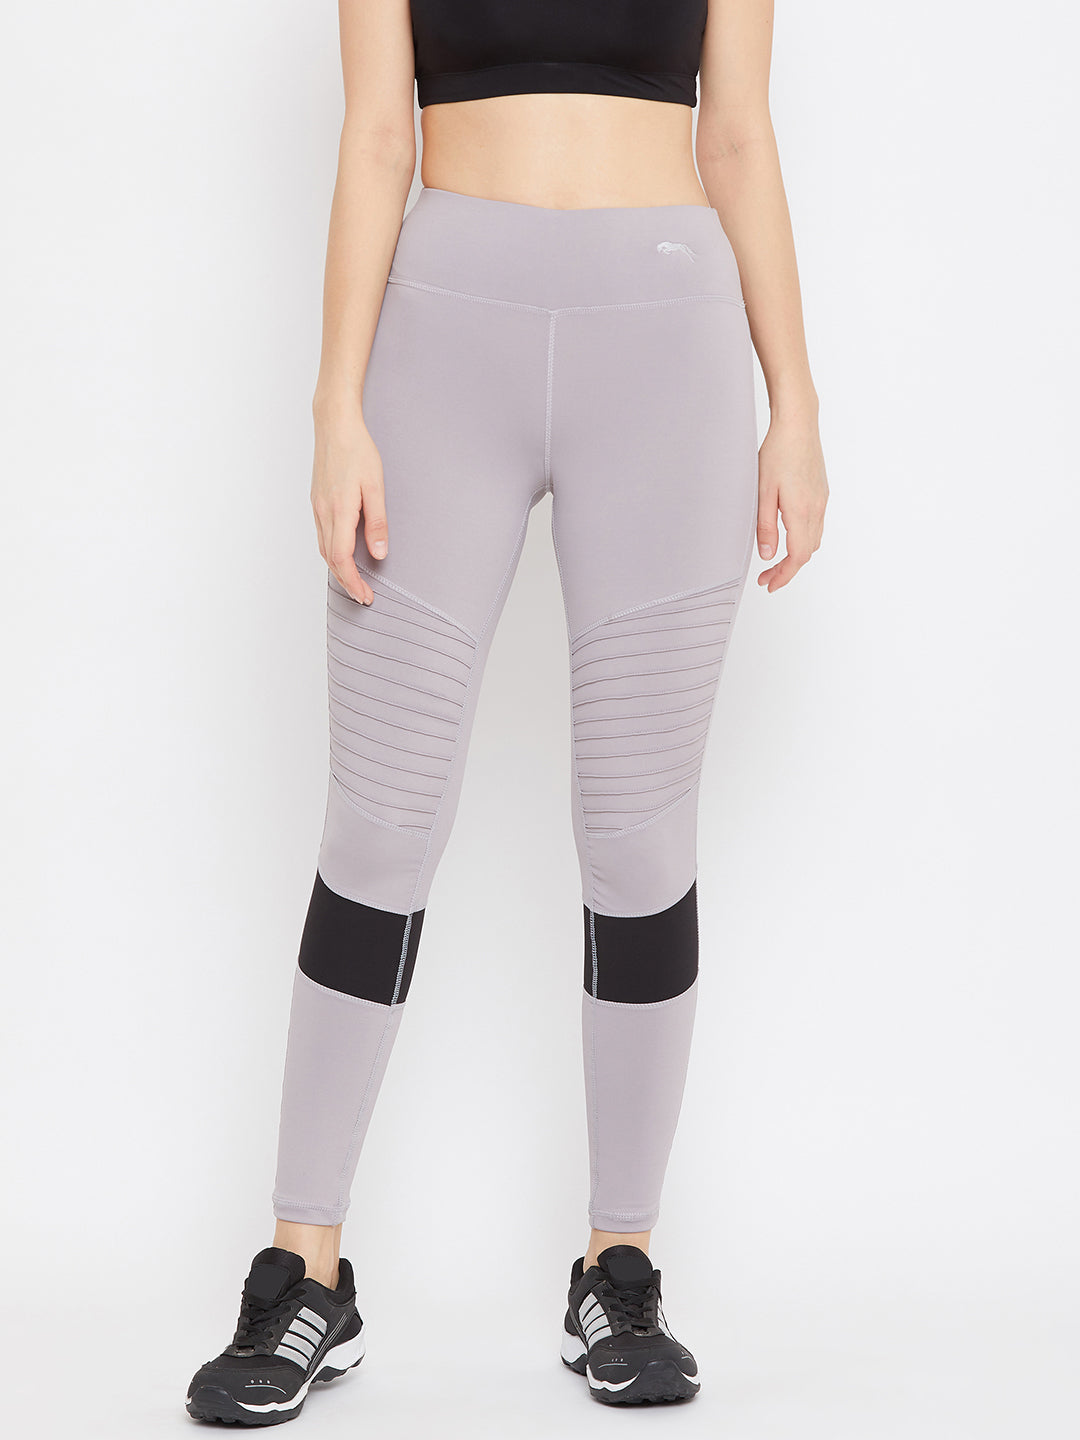 JUMP USA Women Grey Solid Active Wear Tights